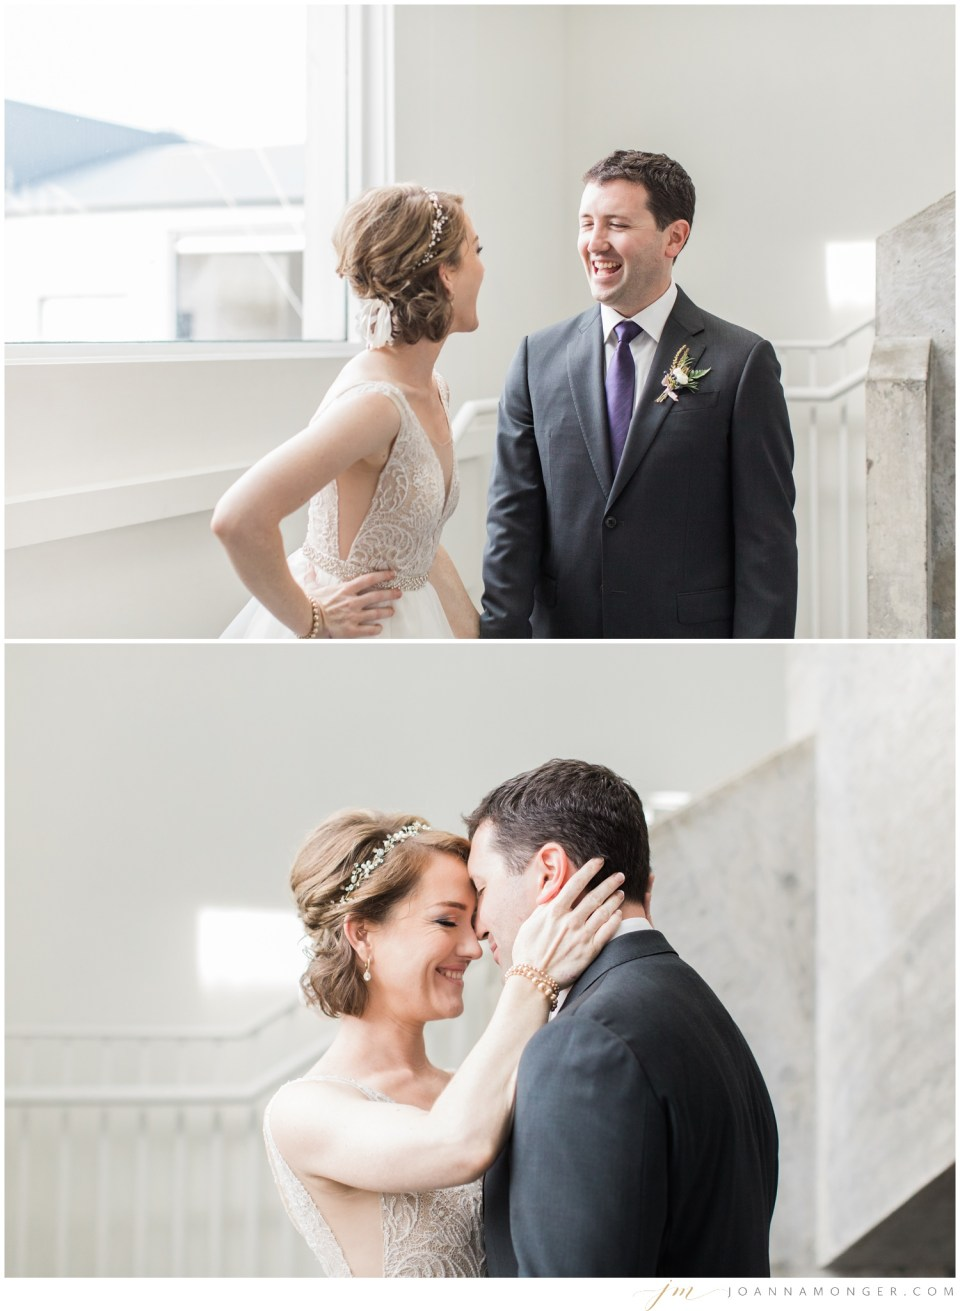 A bride and groom laugh and embrace during their elegant wedding at Canvas Event Space in SODO, Seattle, WA. | Joanna Monger Photography | Snohomish & Seattle Wedding Photographer